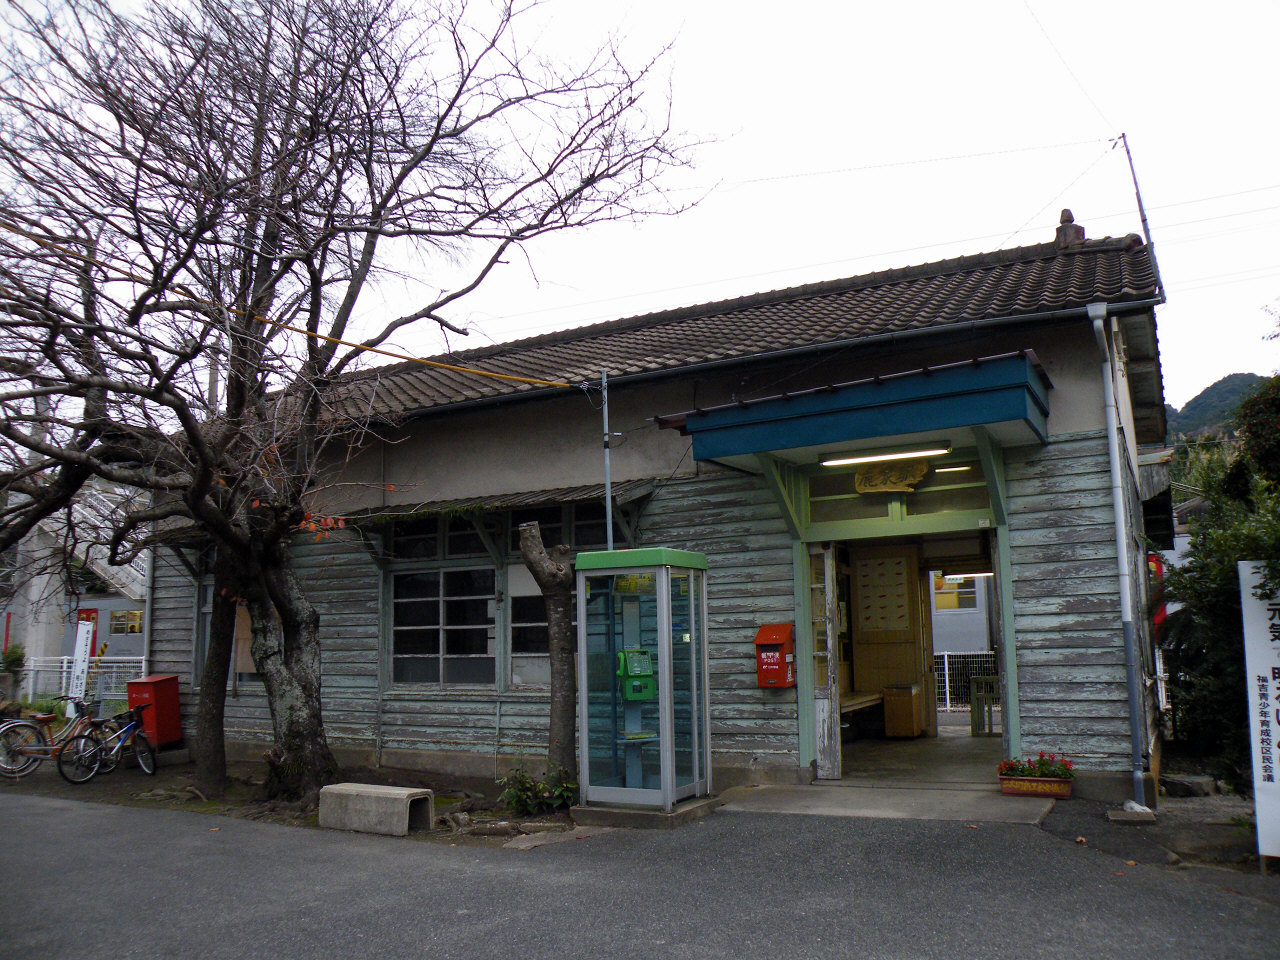 http://upload.wikimedia.org/wikipedia/commons/6/6c/JRKyushu_Shikaka_Station_1.jpg